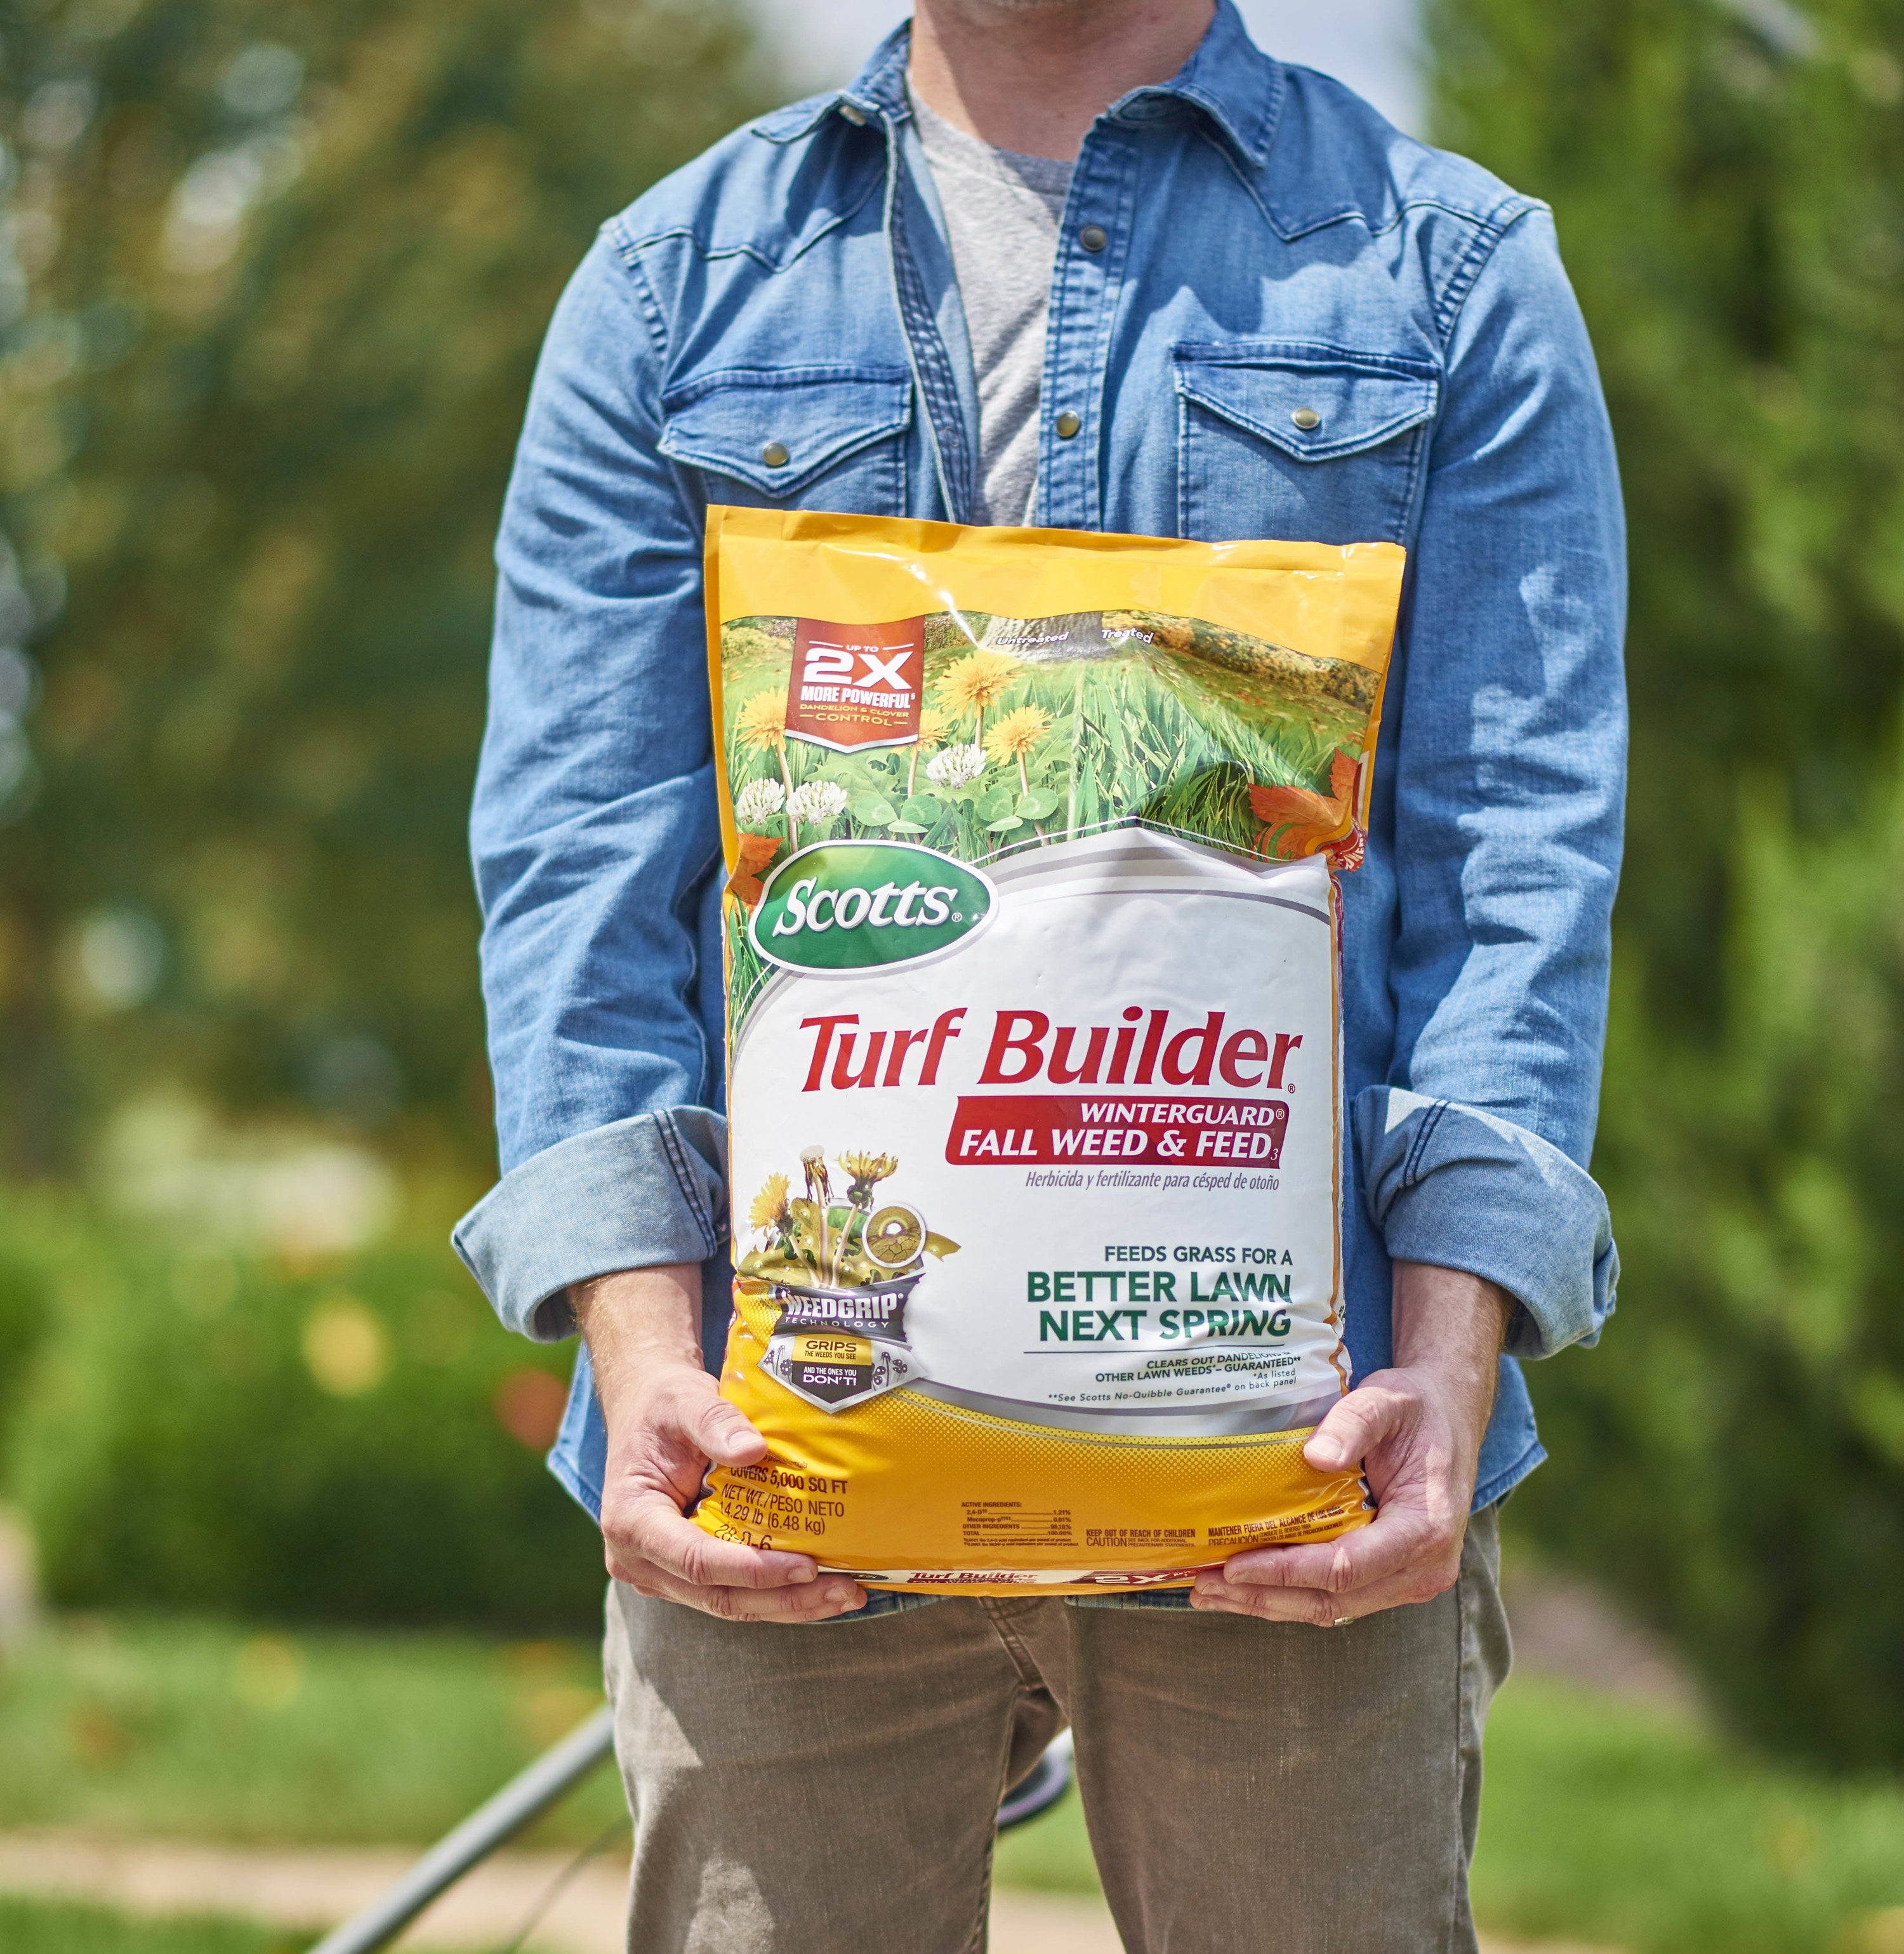 Model holding a large yellow bag of Scotts turf builder